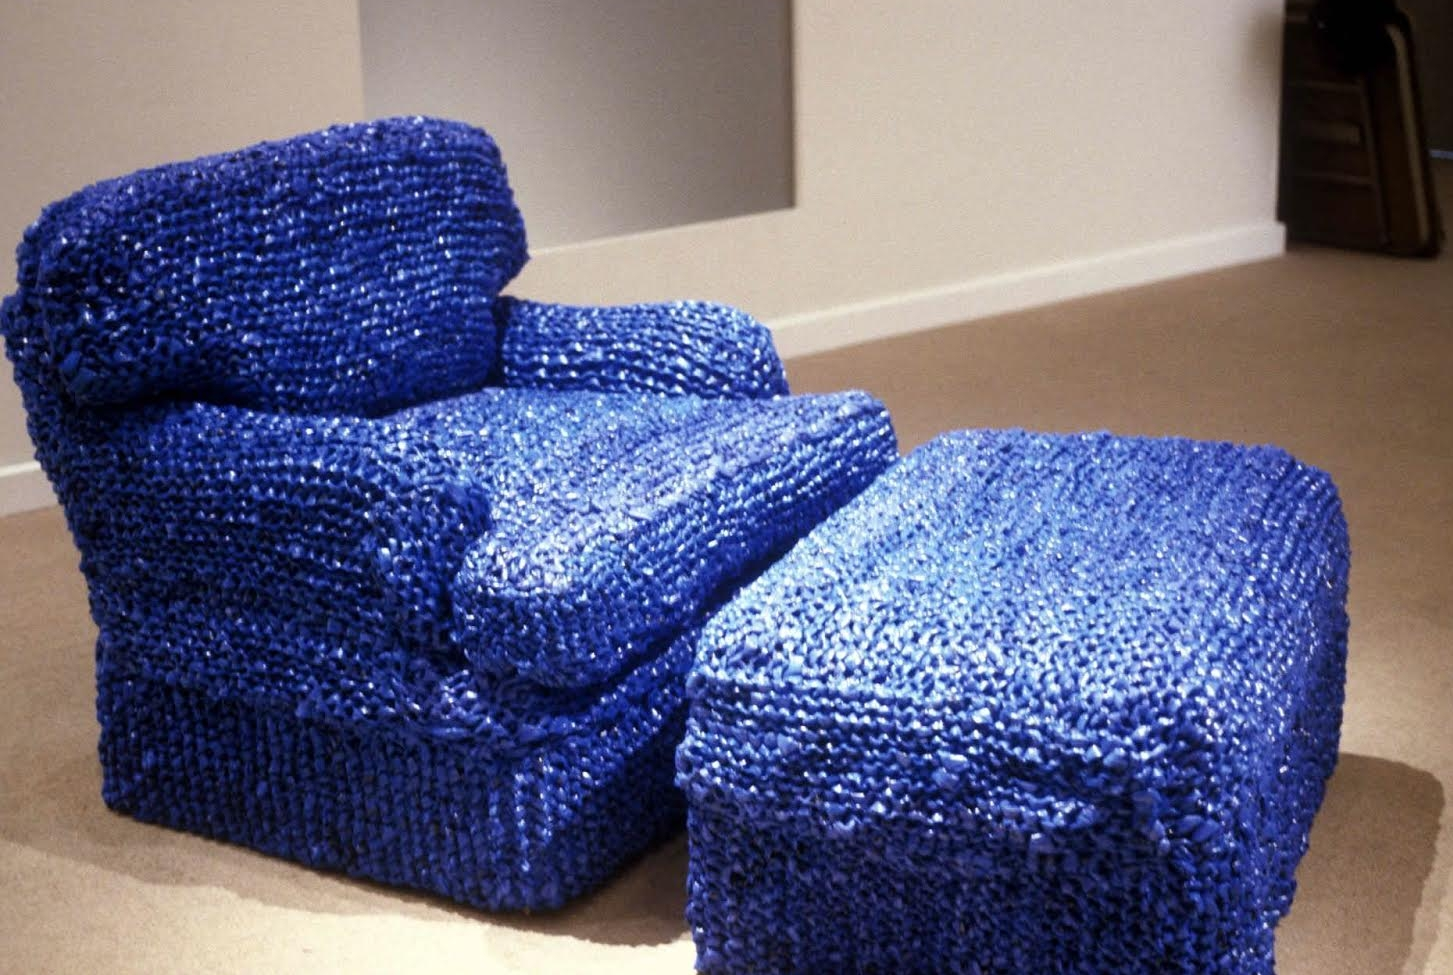 Sarah Hollis Perry - Teaches at the School of the Museum of Fine Arts, Boston and has a B.A. in Art History from Smith College, often employs skills associated with women's work such as weaving, knitting and sewing. This armchair, upholstered with New York Times delivery bags, provokes consideration of the annoying problem of overabundant bags.